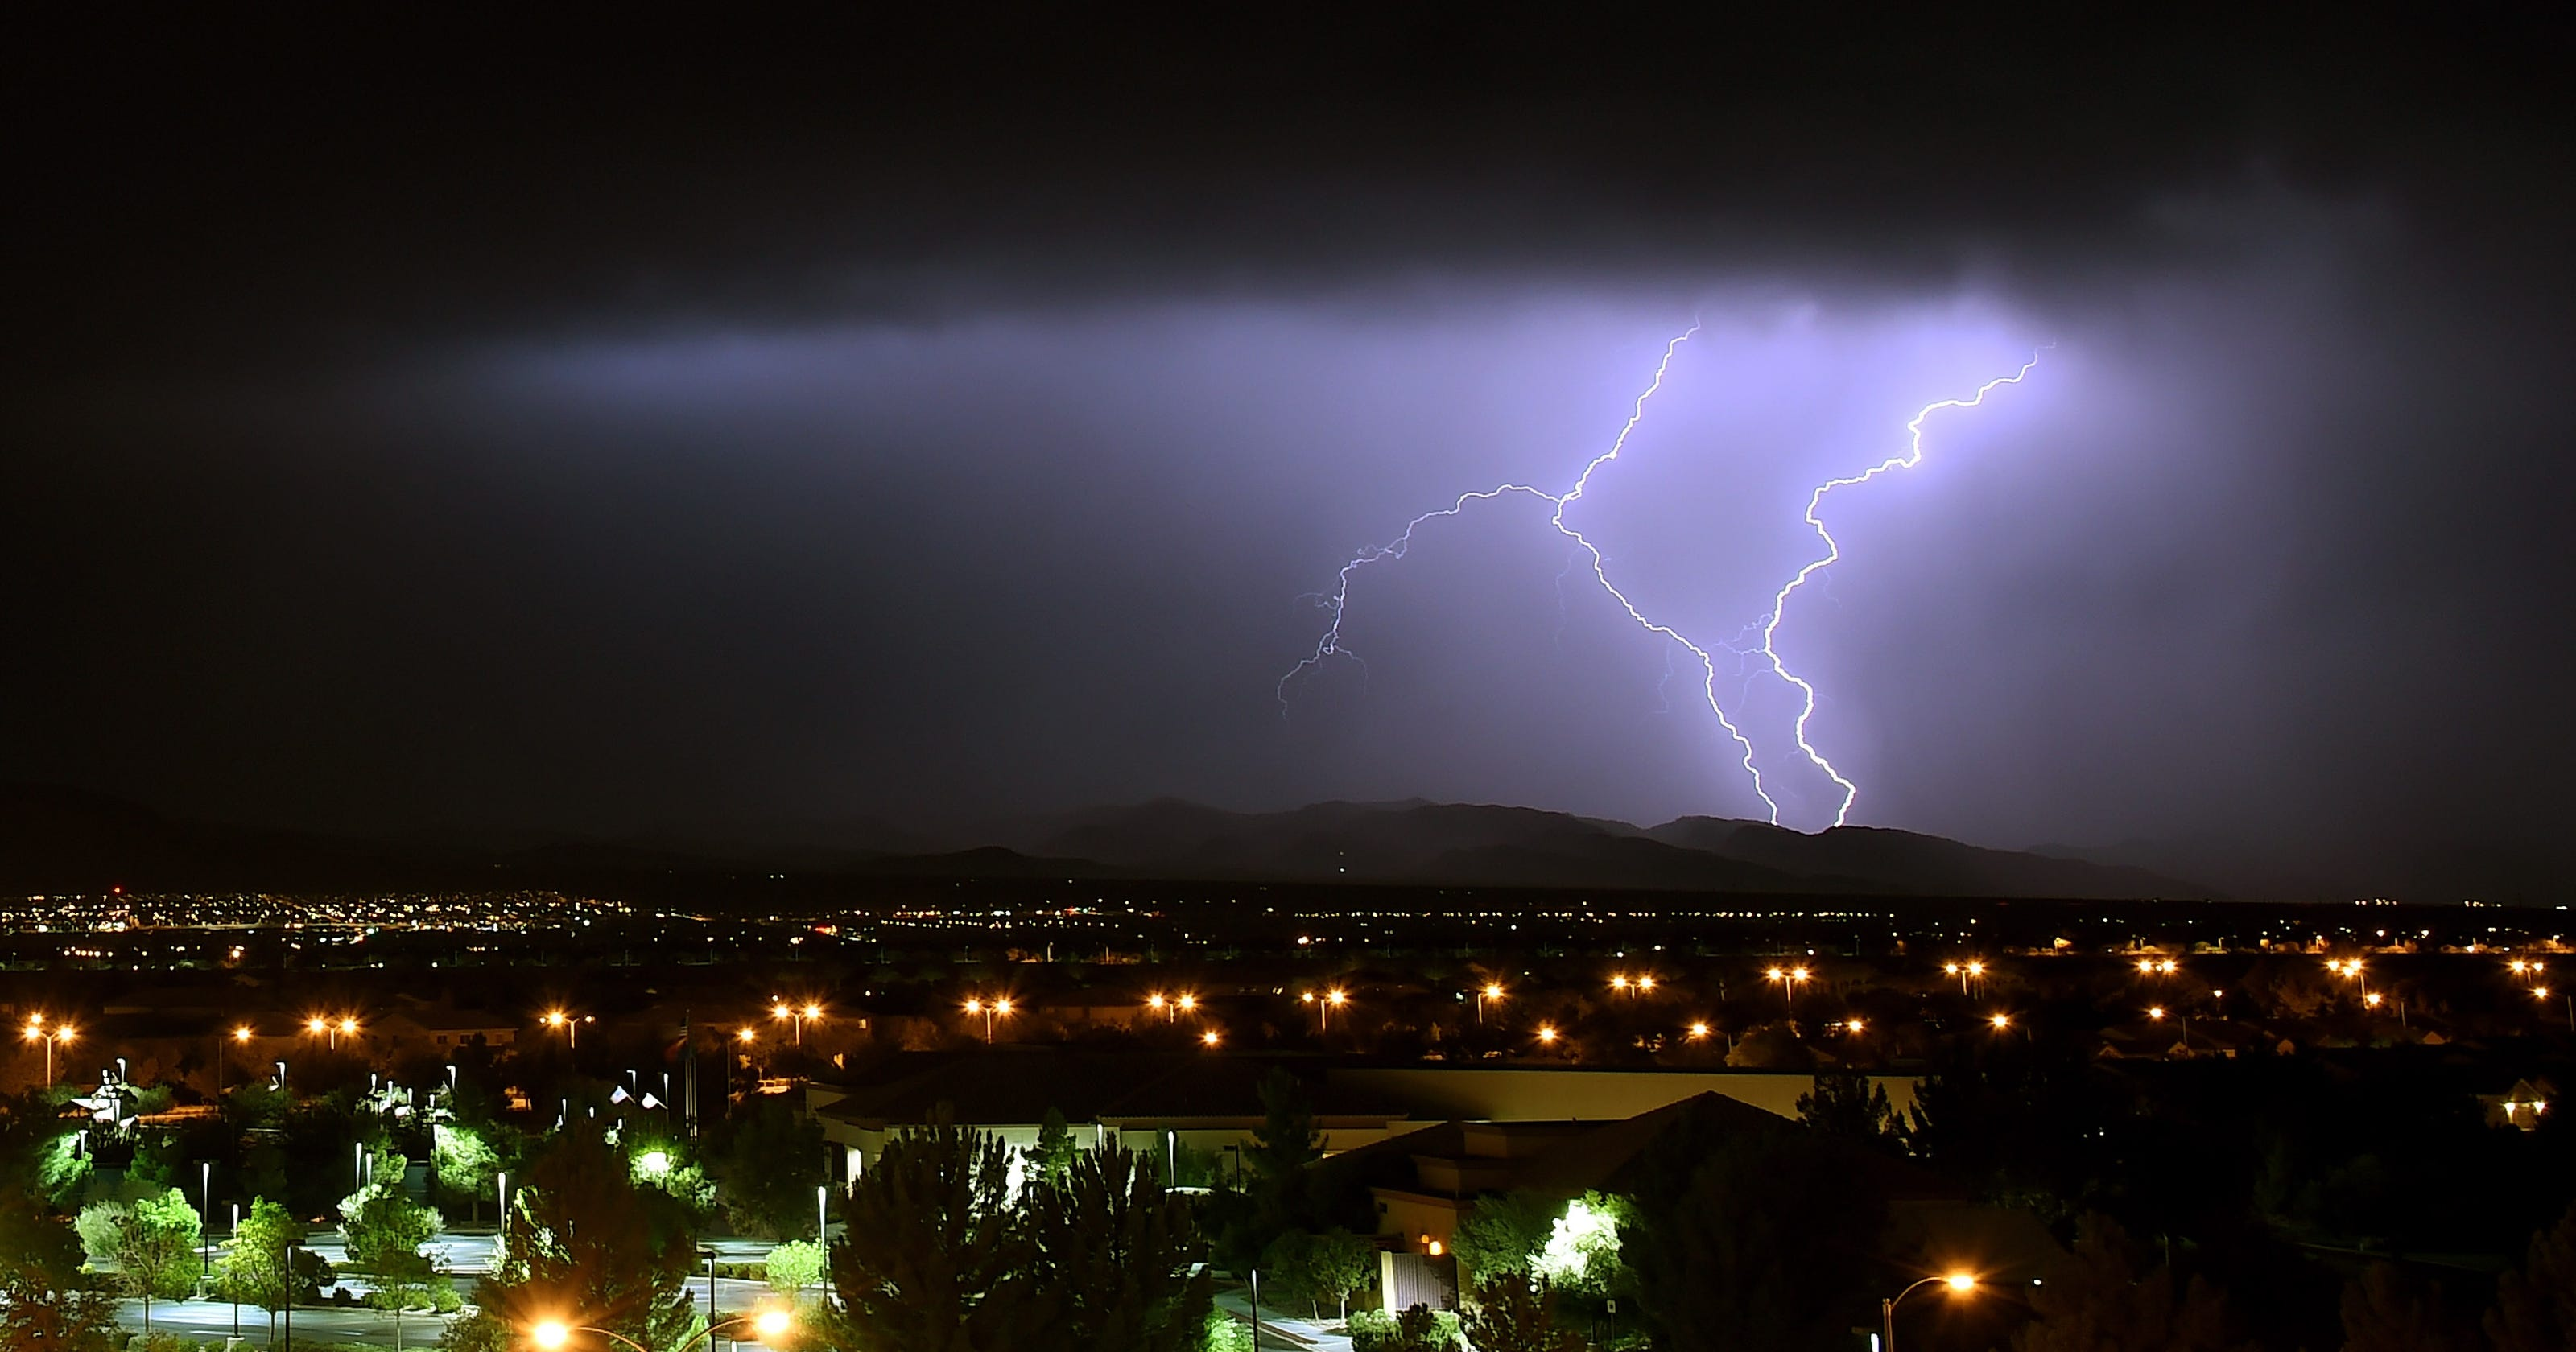 Fourth of july one of most hazardous times for lightning